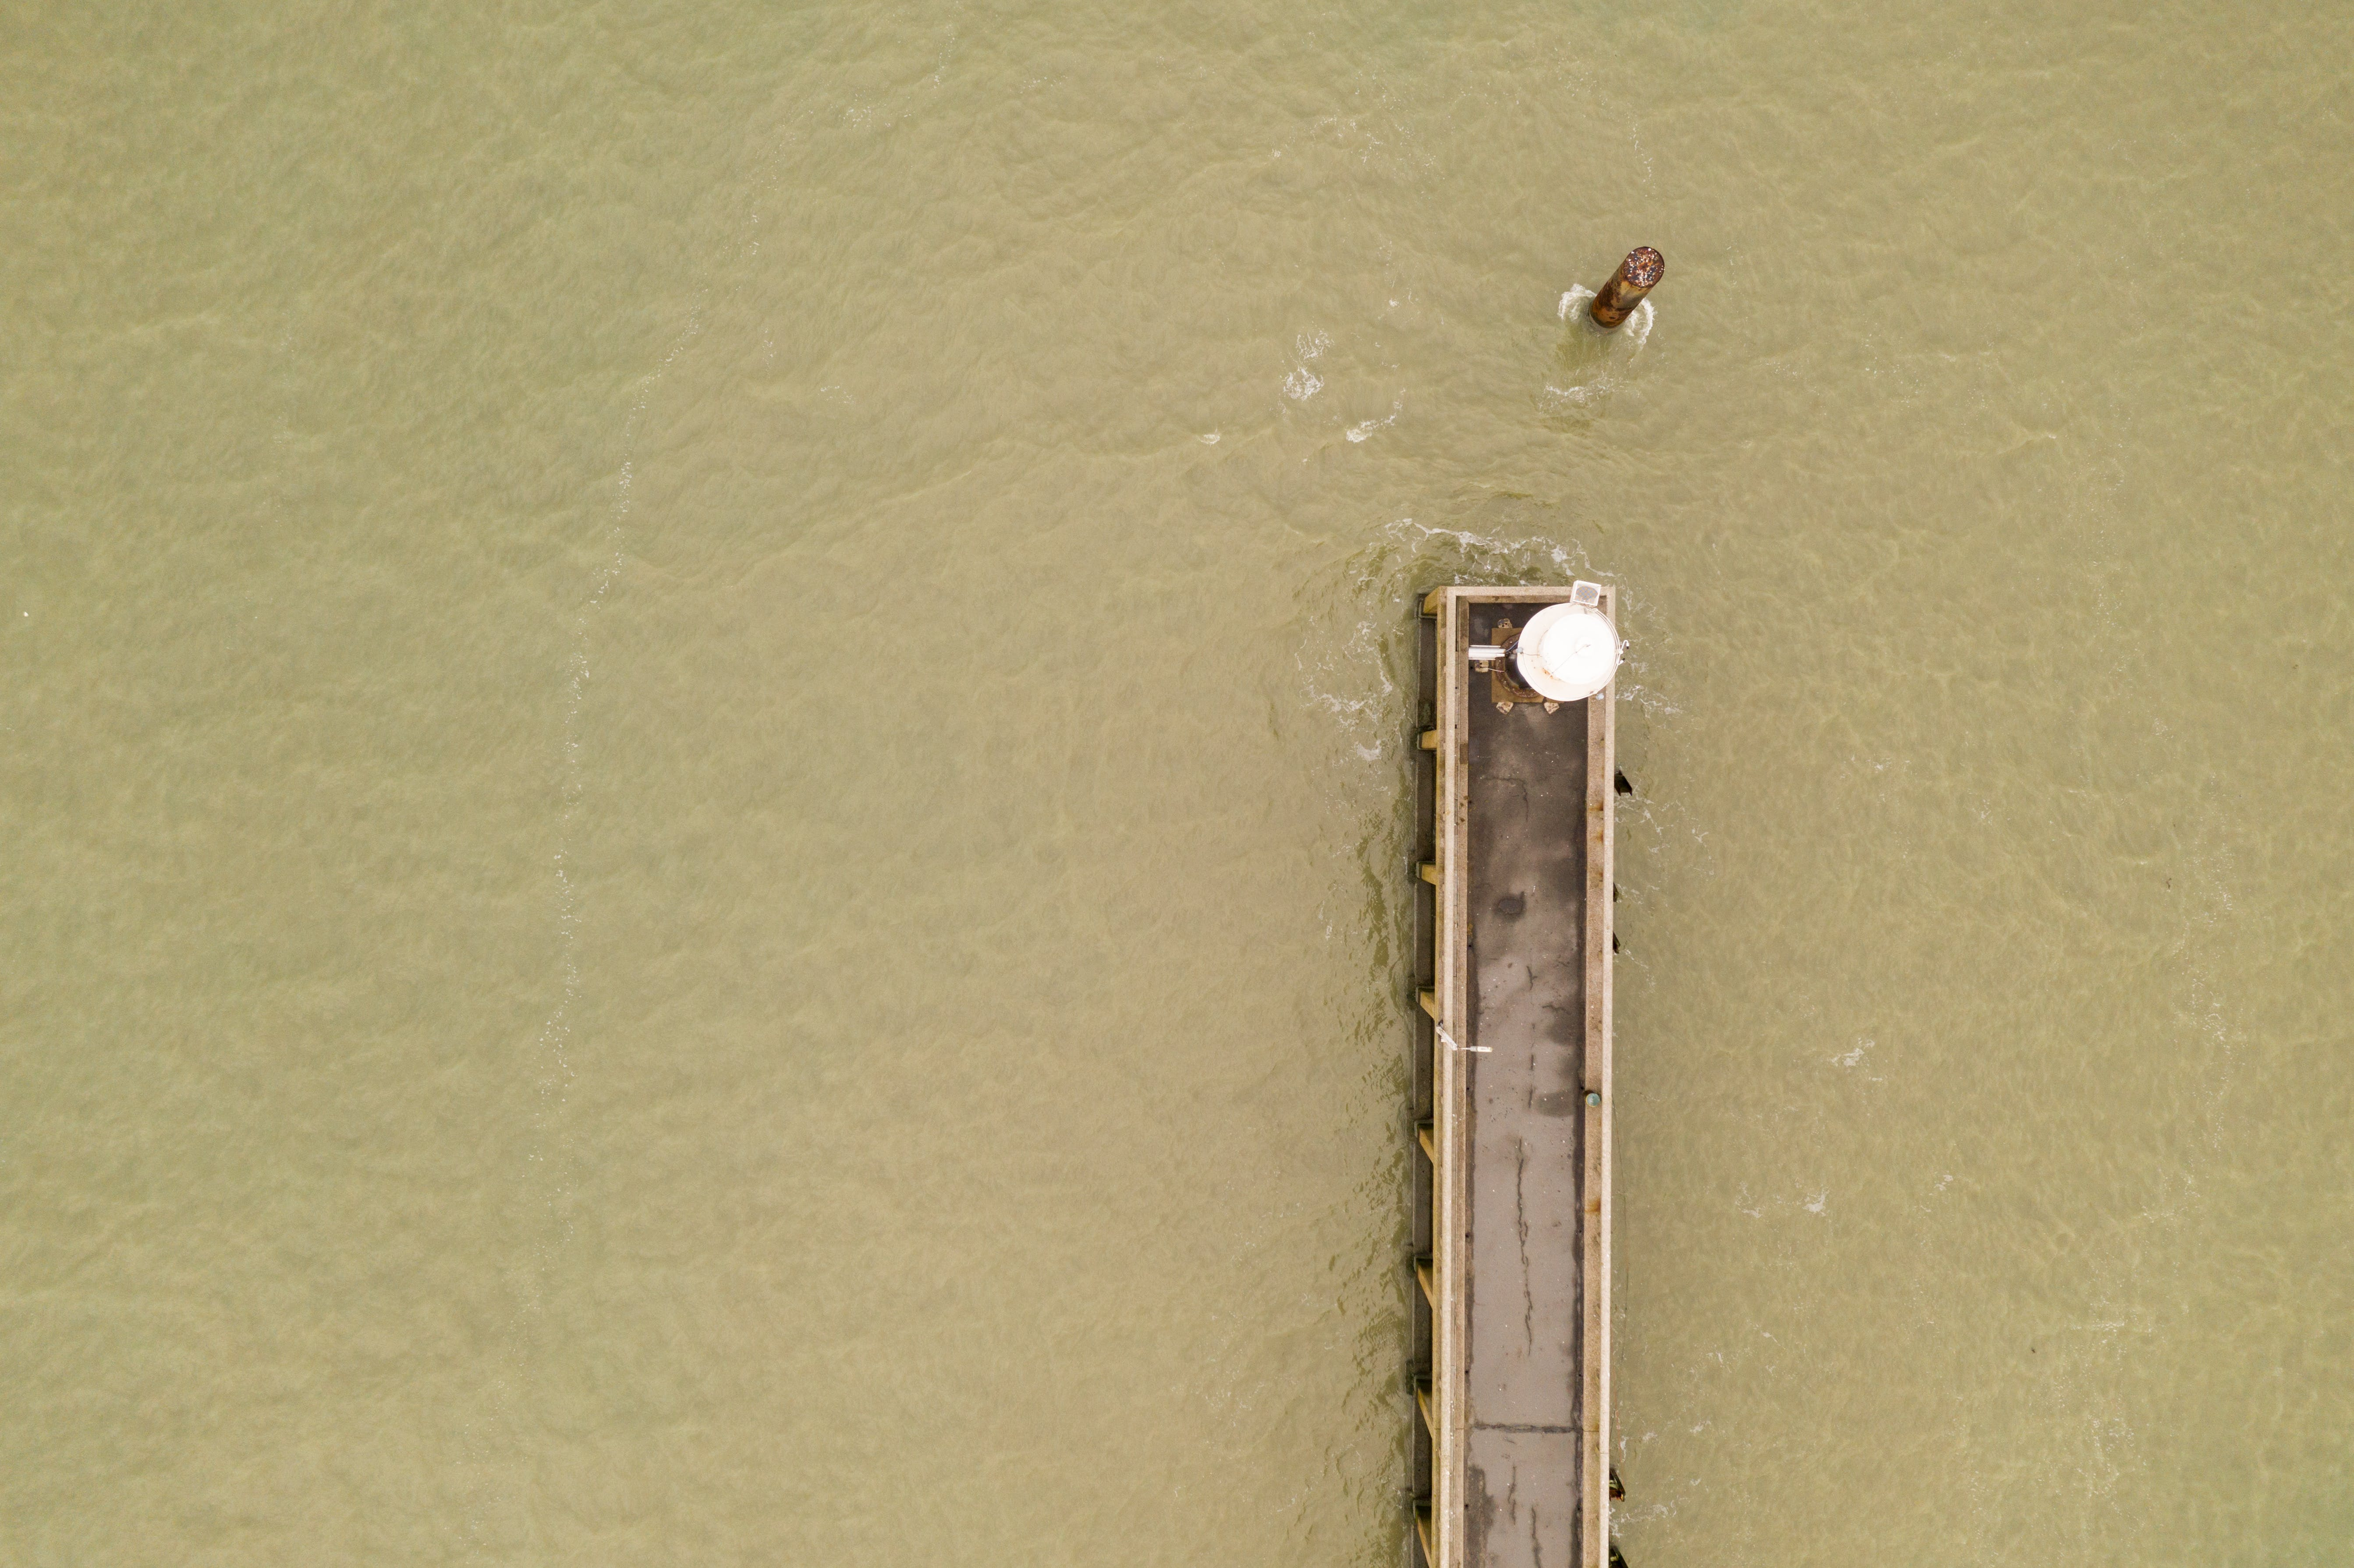 Aerial View of Dock on Beige Body of Water